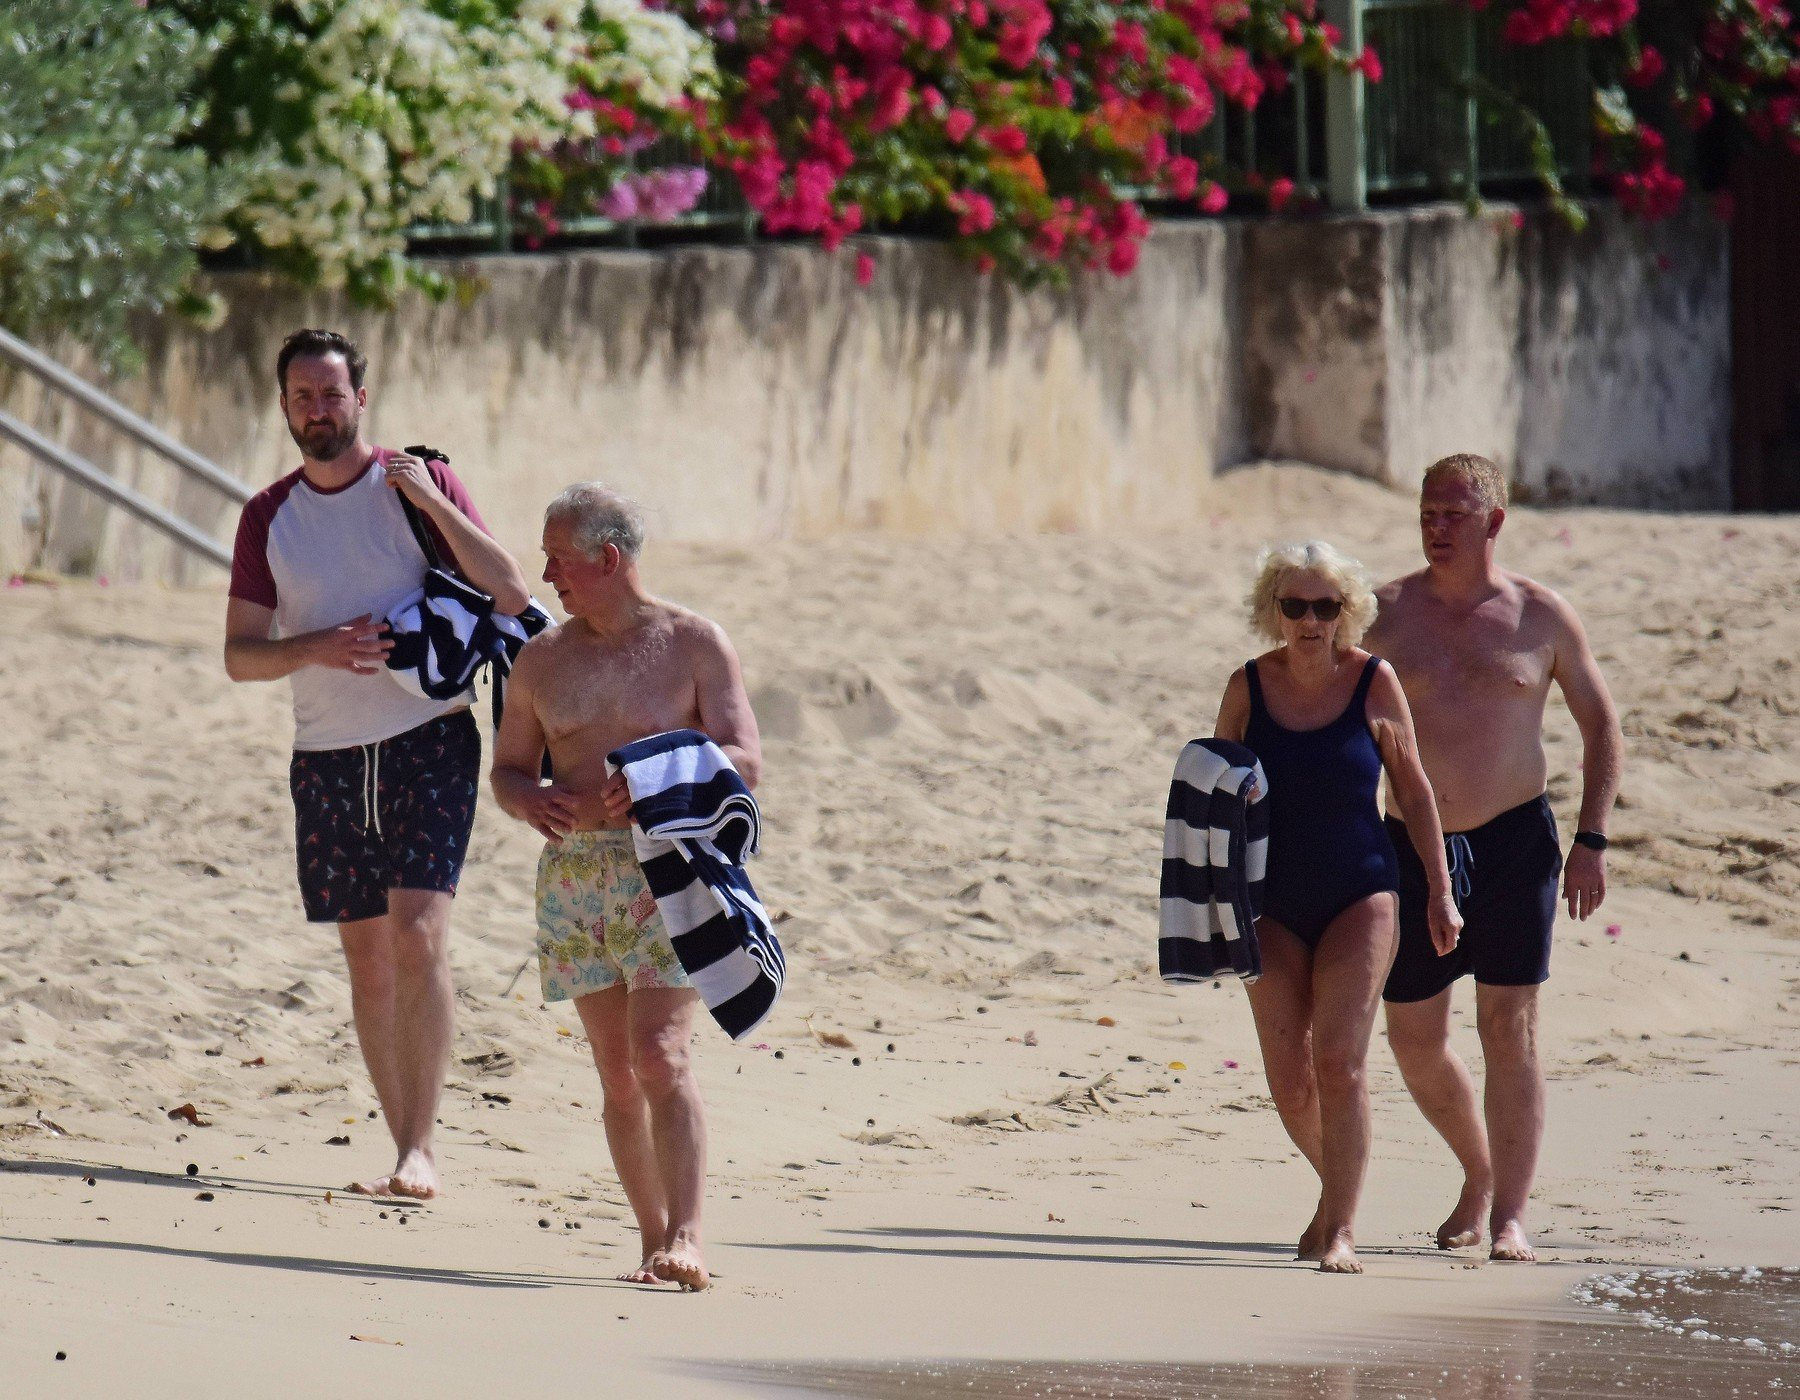 *PREMIUM EXCLUSIVE* Prince Charles and wife Camilla, Duchess of Cornwall,  pictured on the beach in Barbados. The Prince of Wales, 70, showed off his trim frame in floral trunks while Camilla, 71, wore an aqua-blue one-piece swimsuit. Camilla and Charles are touring the Caribbean representing the Queen at the behest of the Foreign Office. The highlight of their trip is a four-day tour of Cuba beginning on March 24 - the first by members of the monarchy. 18 Mar 2019, Image: 420540072, License: Rights-managed, Restrictions: World Rights, Model Release: no, Credit line: Profimedia, Mega Agency